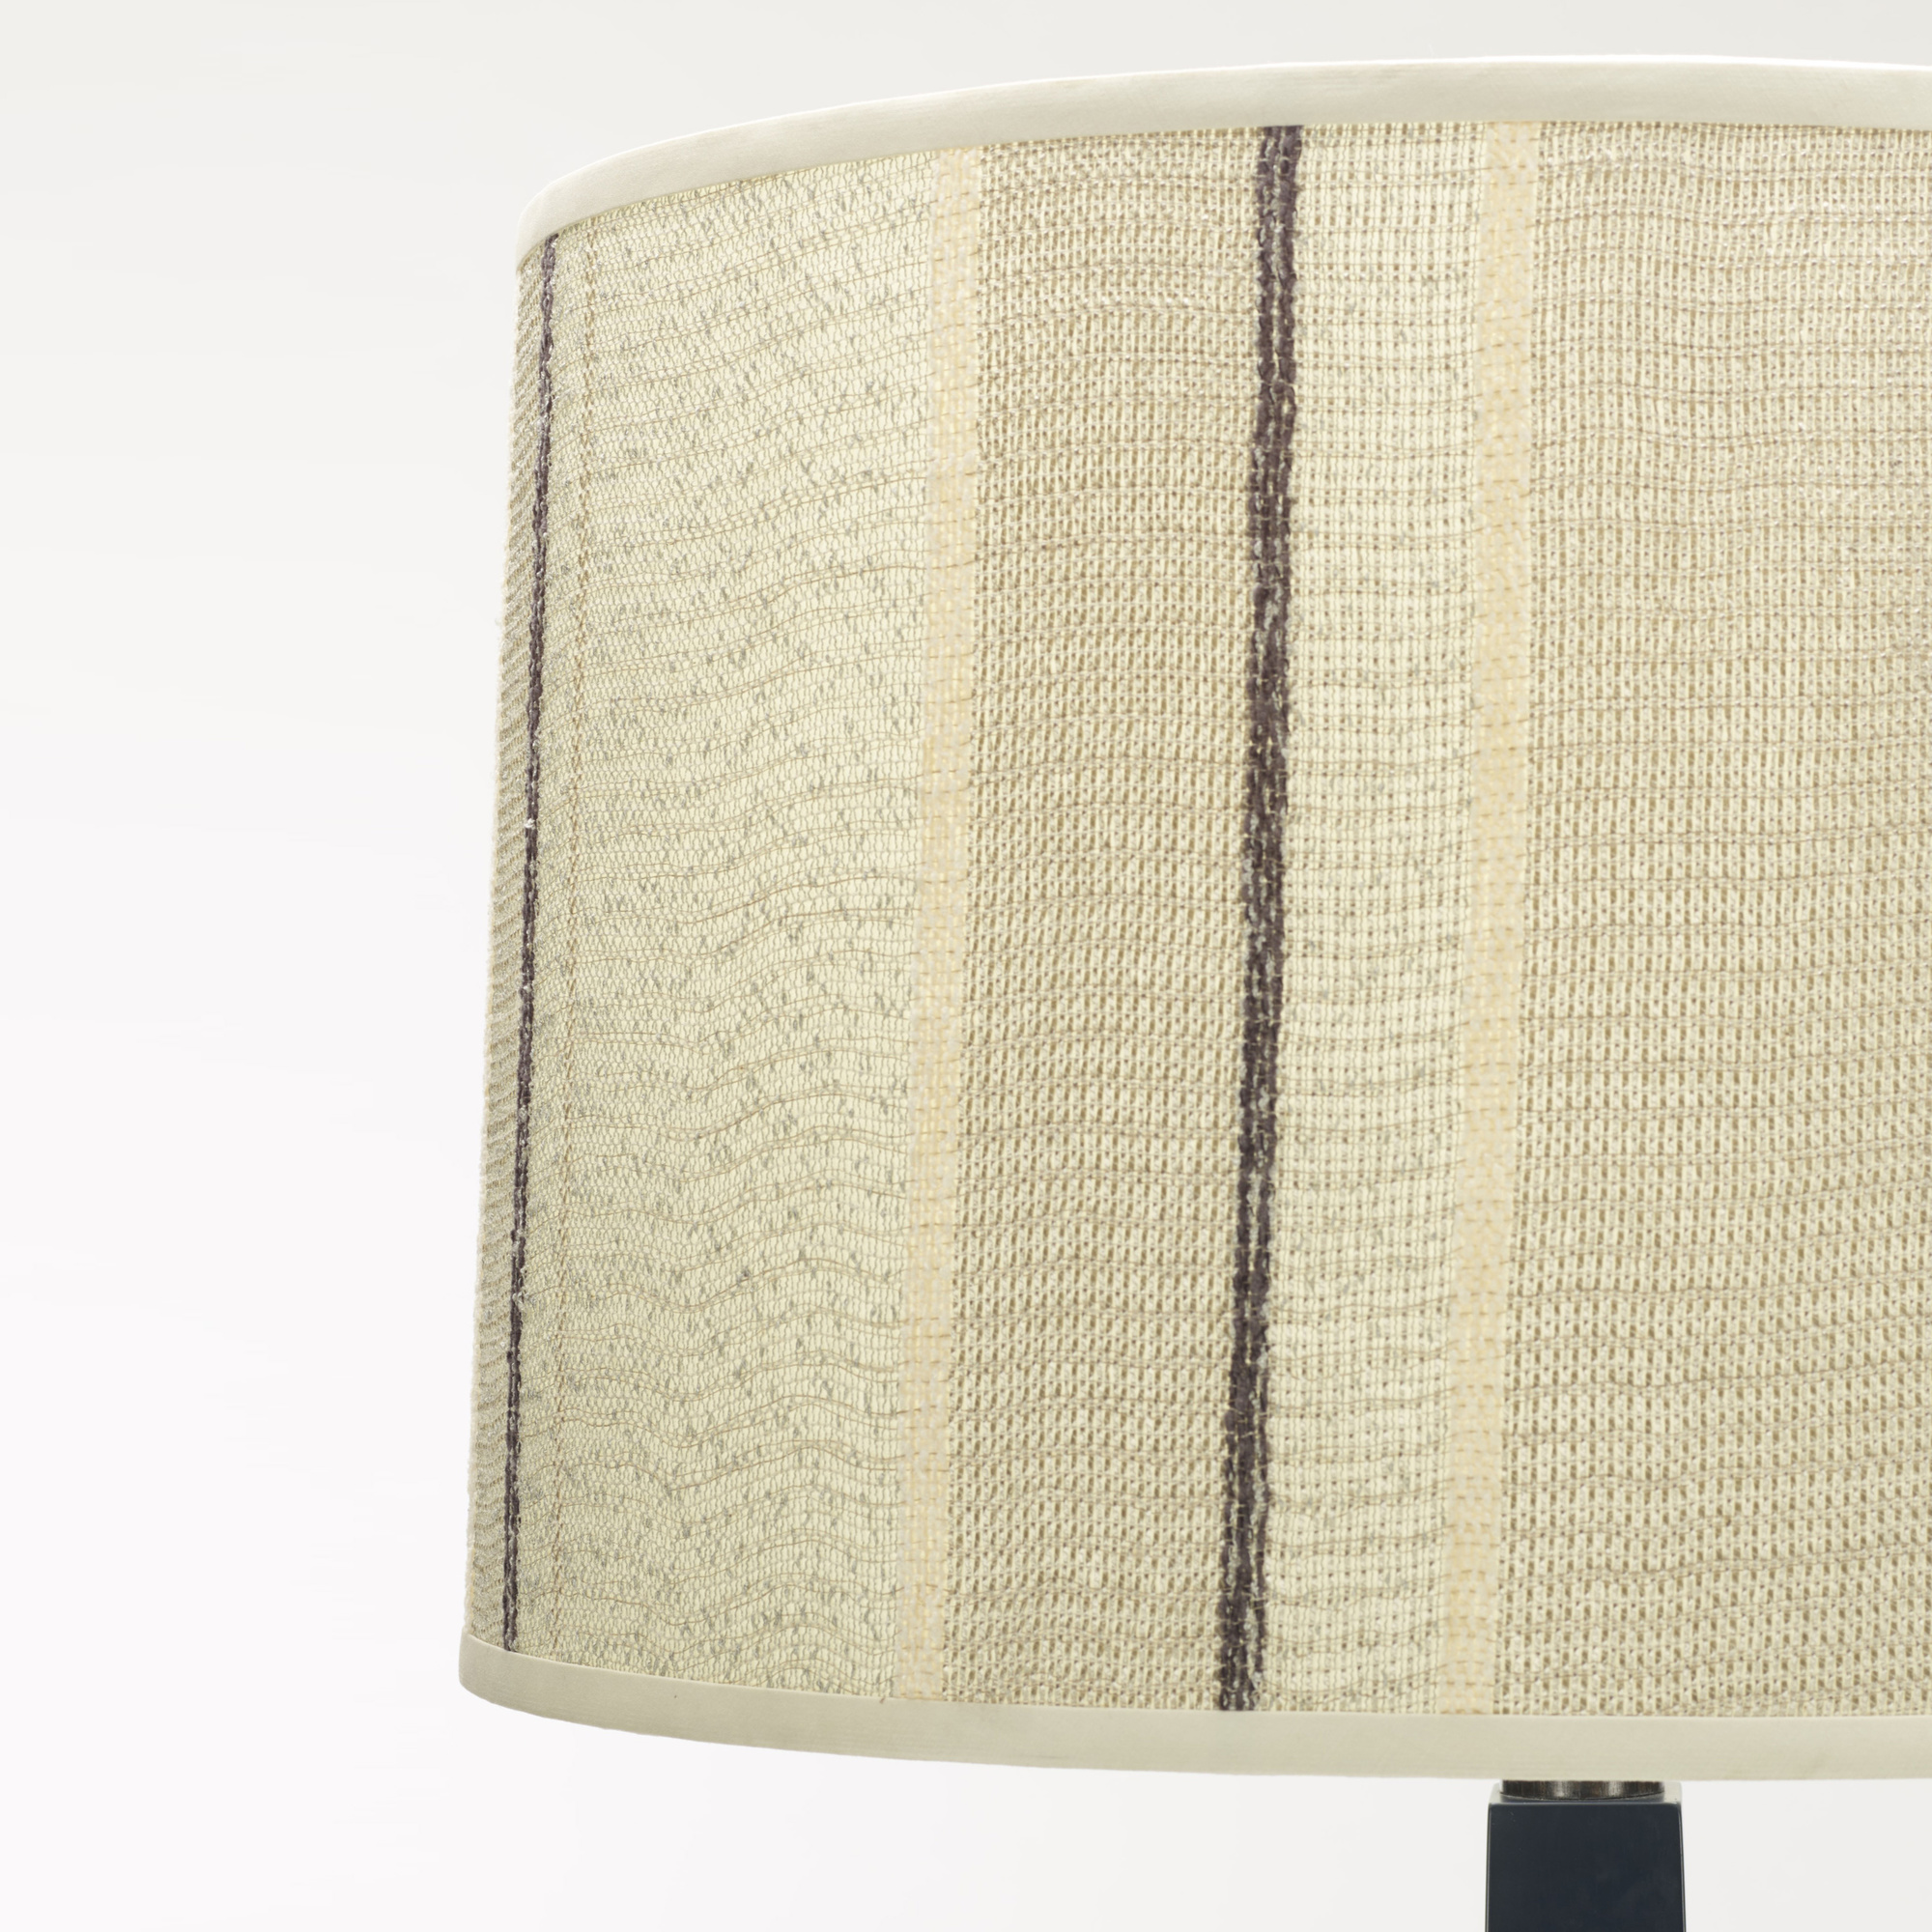 355: William (Billy) Haines / floor lamp (2 of 2)